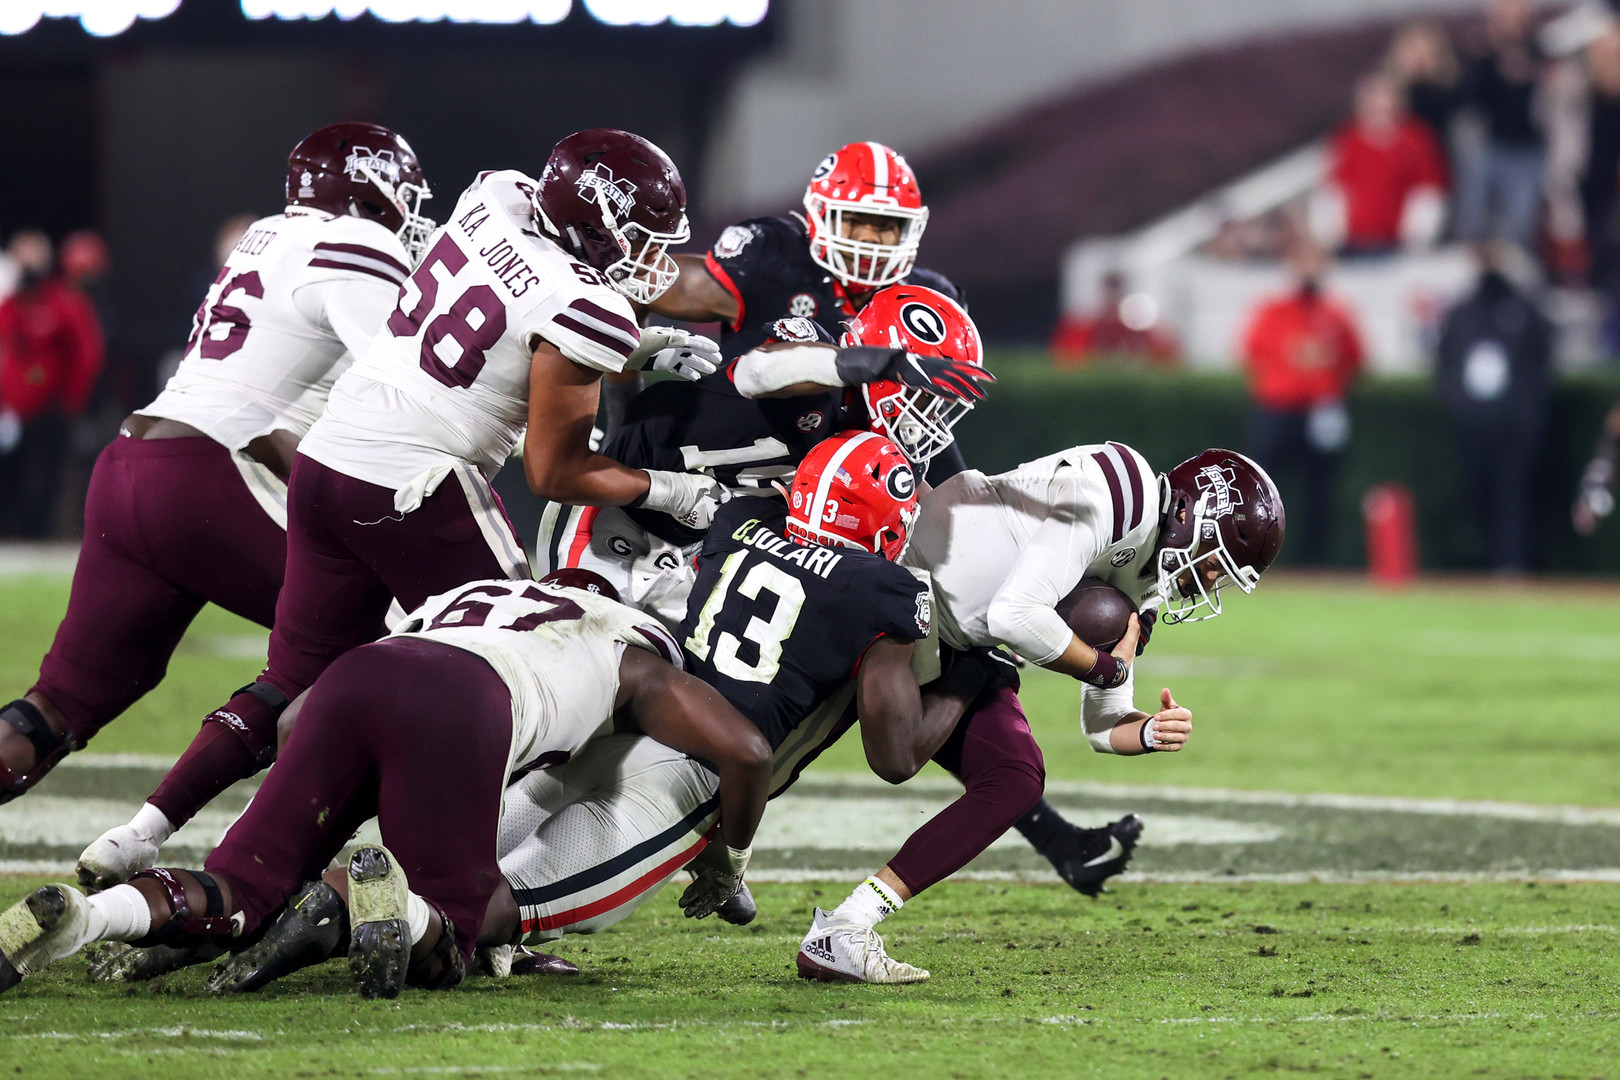 UGA players sack Mississippi State quarterback Will Rogers during the second half of the UGA versus Mississippi State football game in Athens, Georgia on Saturday, Nov. 21, 2020. UGA won the game 31-24.